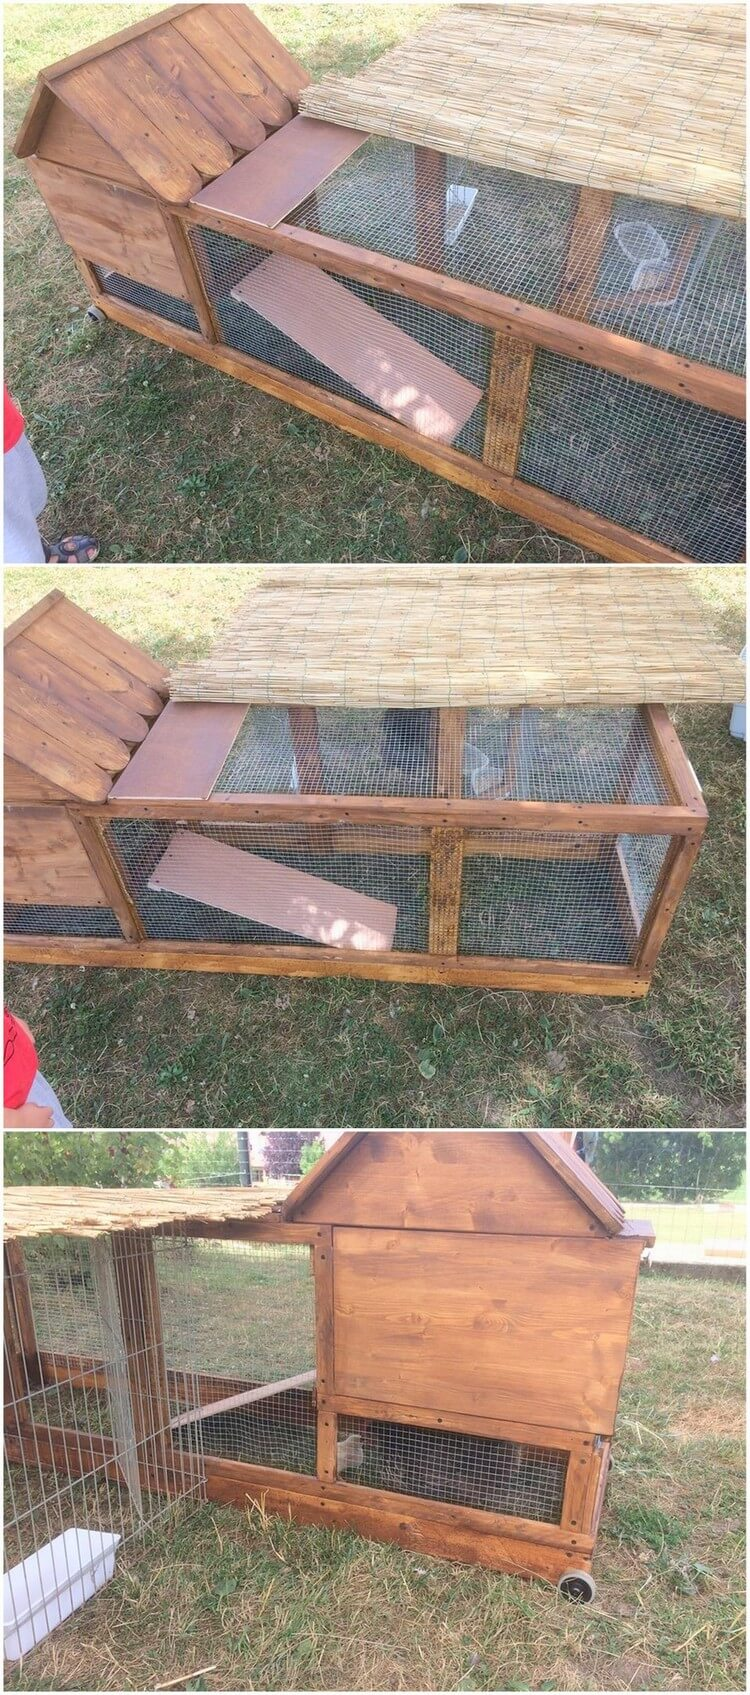 Imaginative ideas with old shipping pallets recycled things Chicken coop from pallet wood